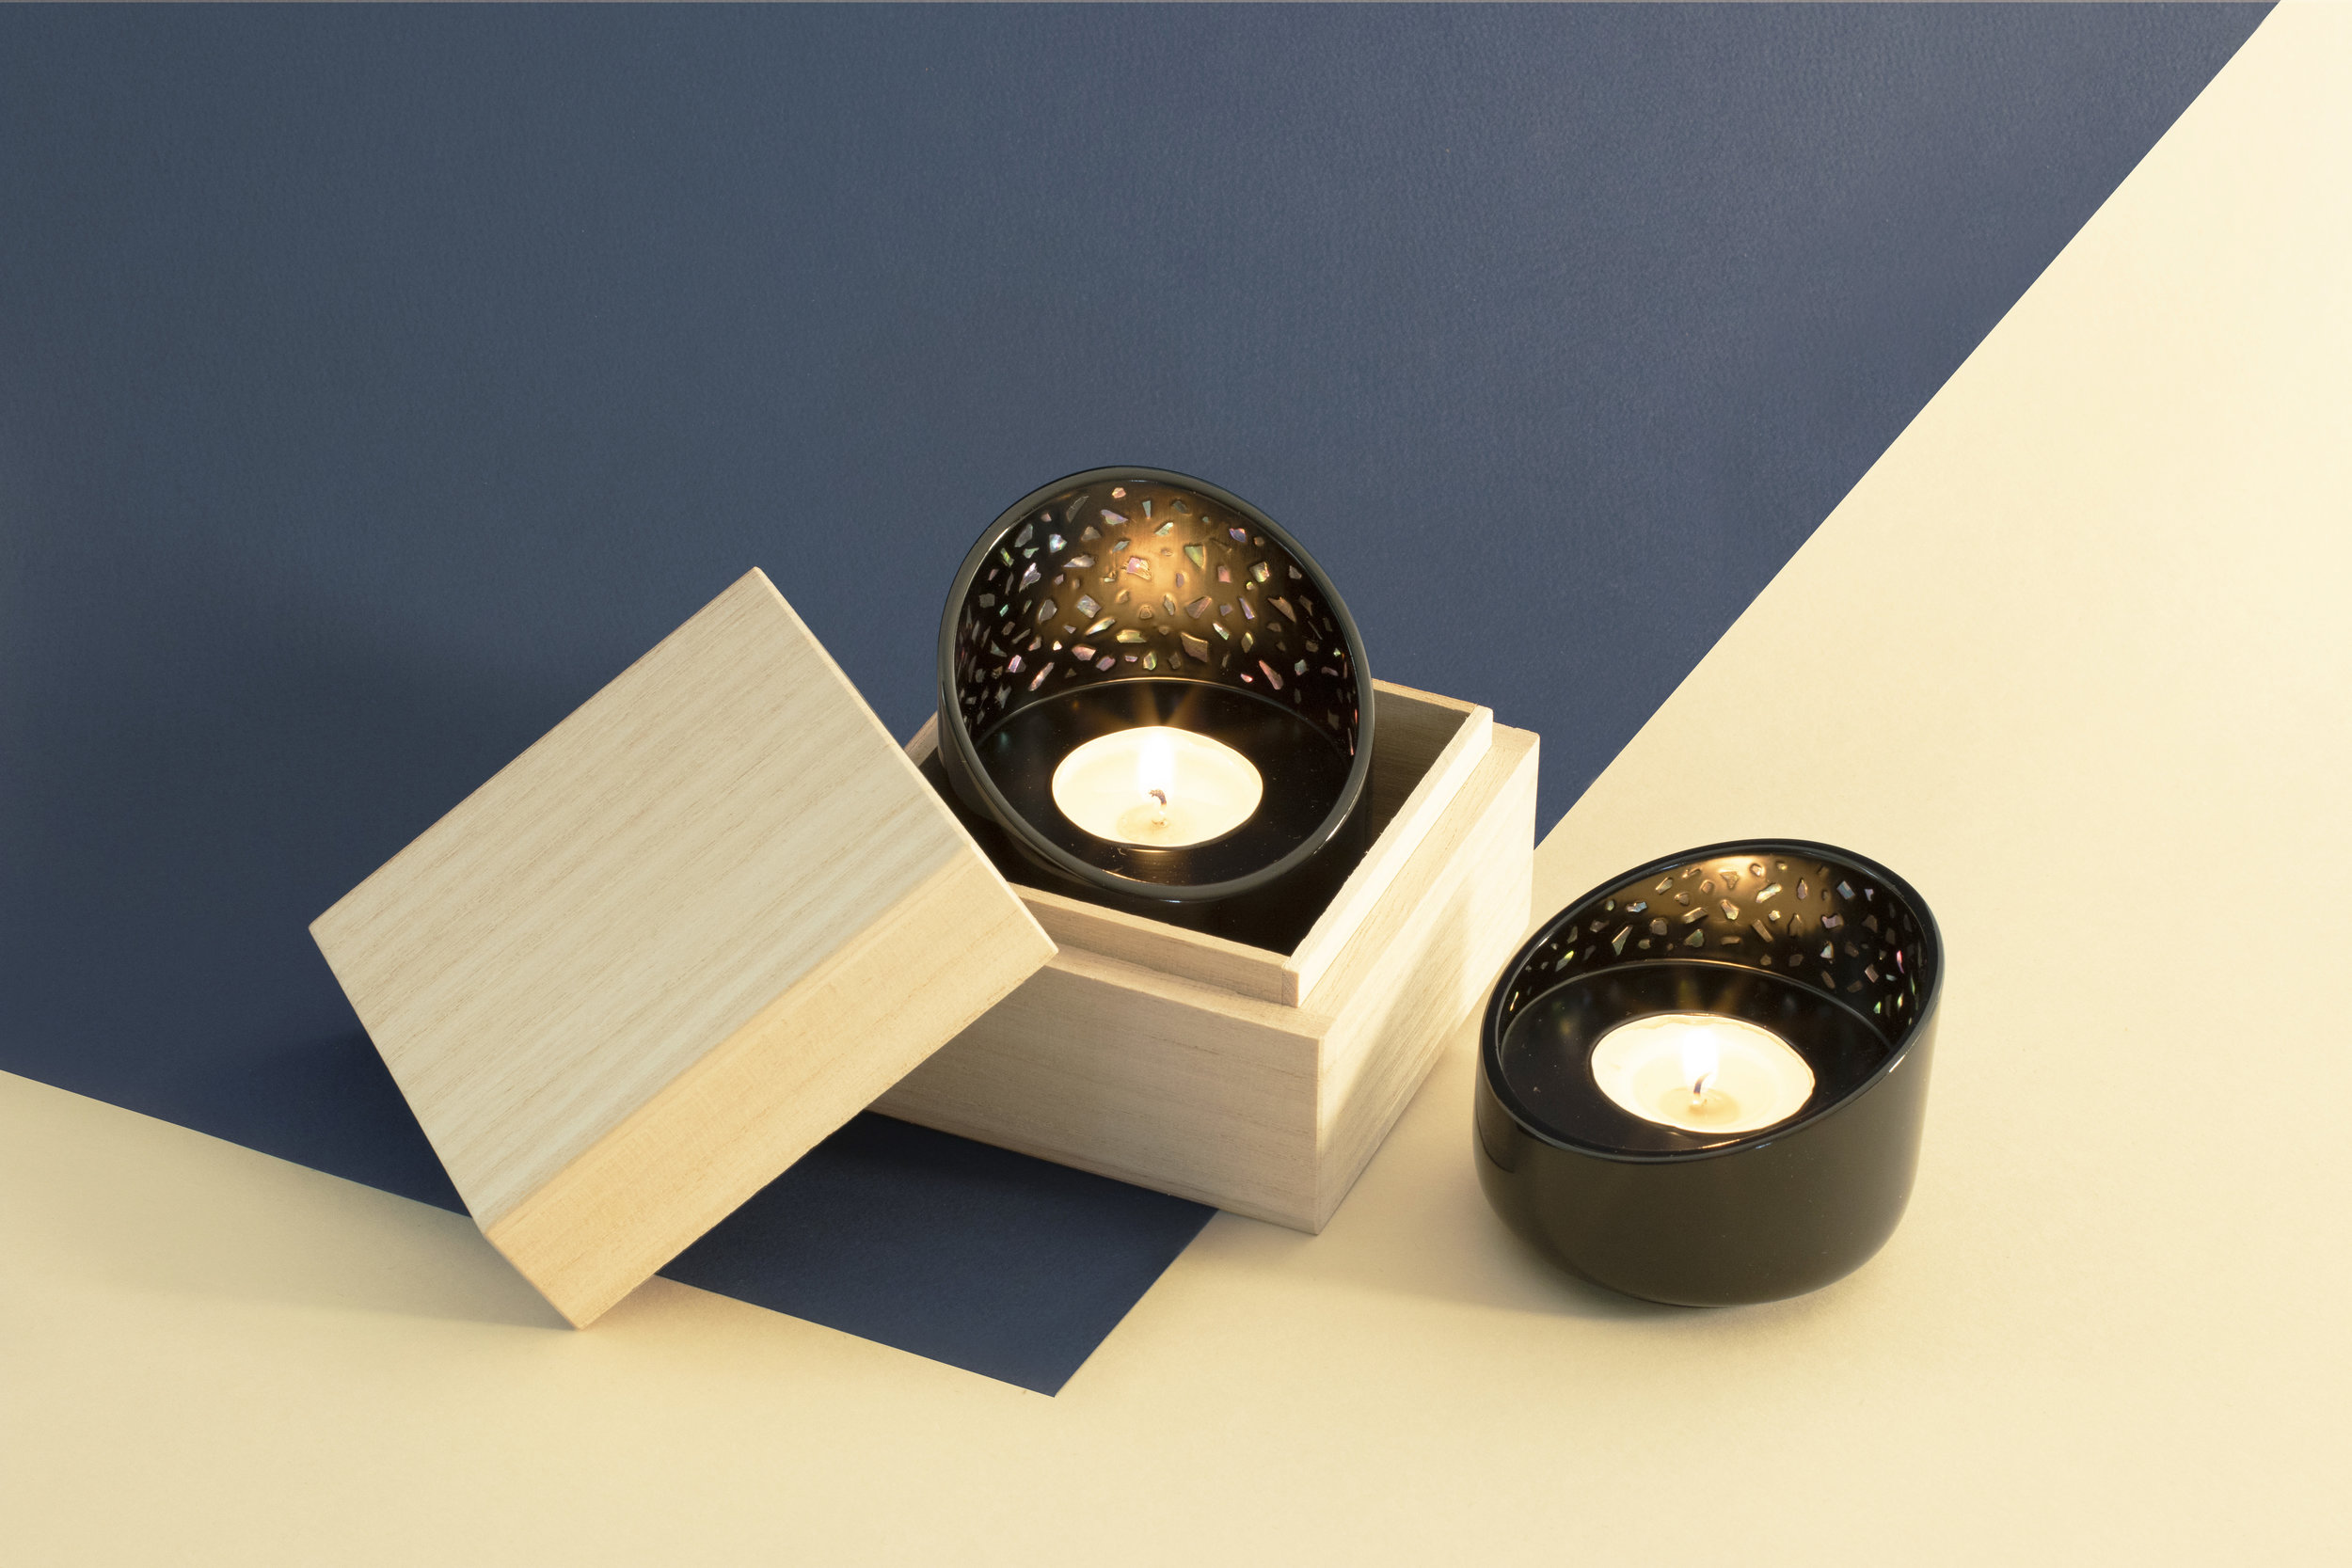 Atelier Takumi - Orion Candle holder _ Crafted by Raden Musashigawa designed by VoisinGuillemin 2.jpg